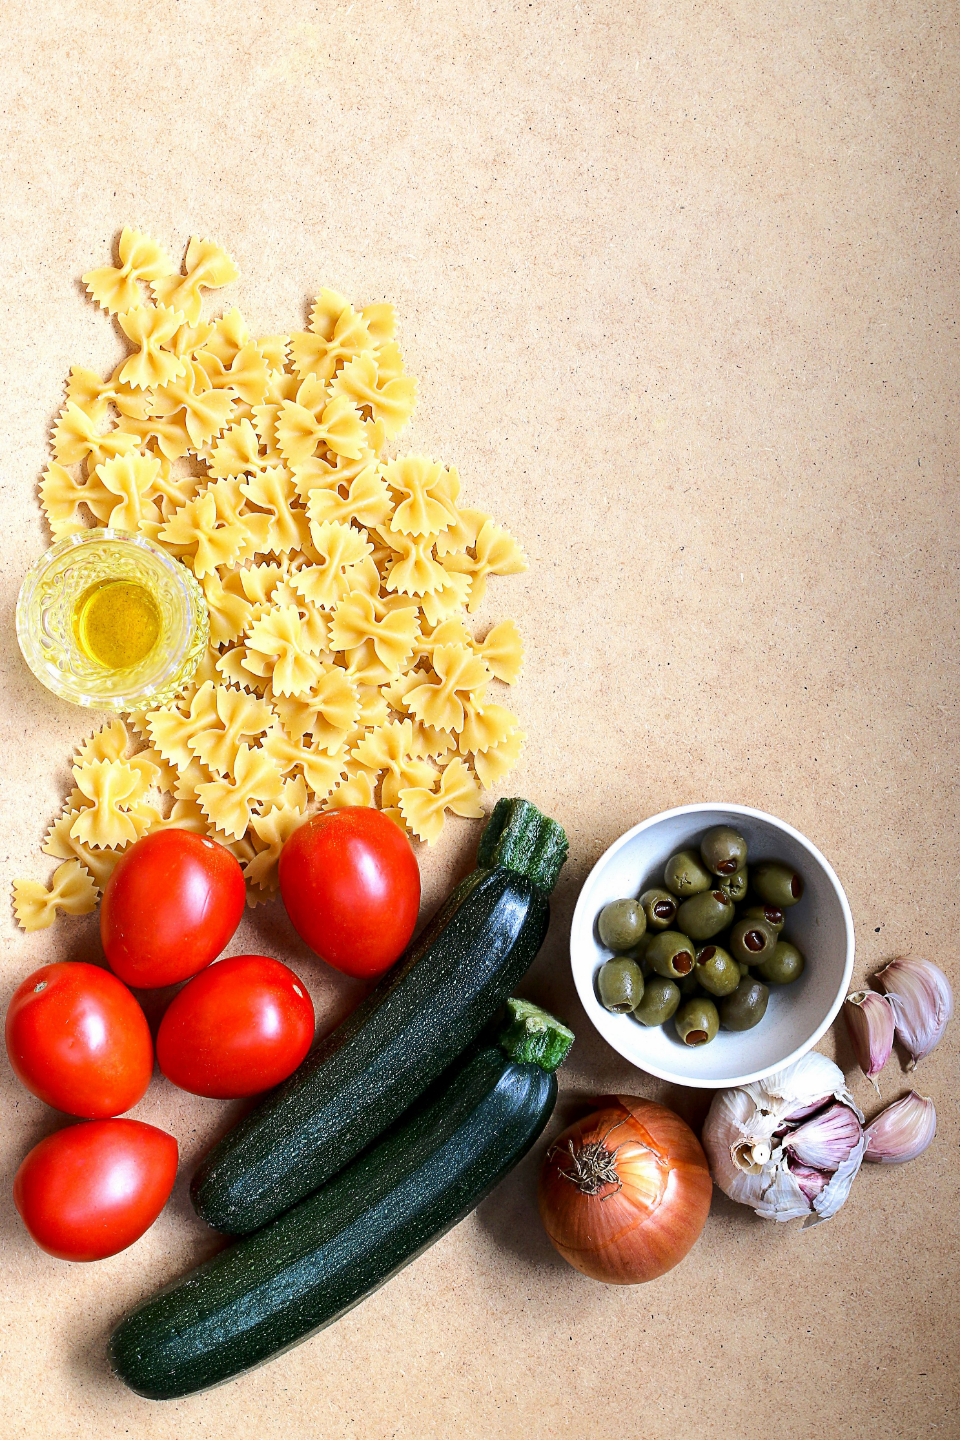 pasta ingredients top flat lay food edible cooking kitchen homemade vegetables dinner prepare fresh garden harvest organic natural cuisine culinary gourmet meal nutrition raw recipe